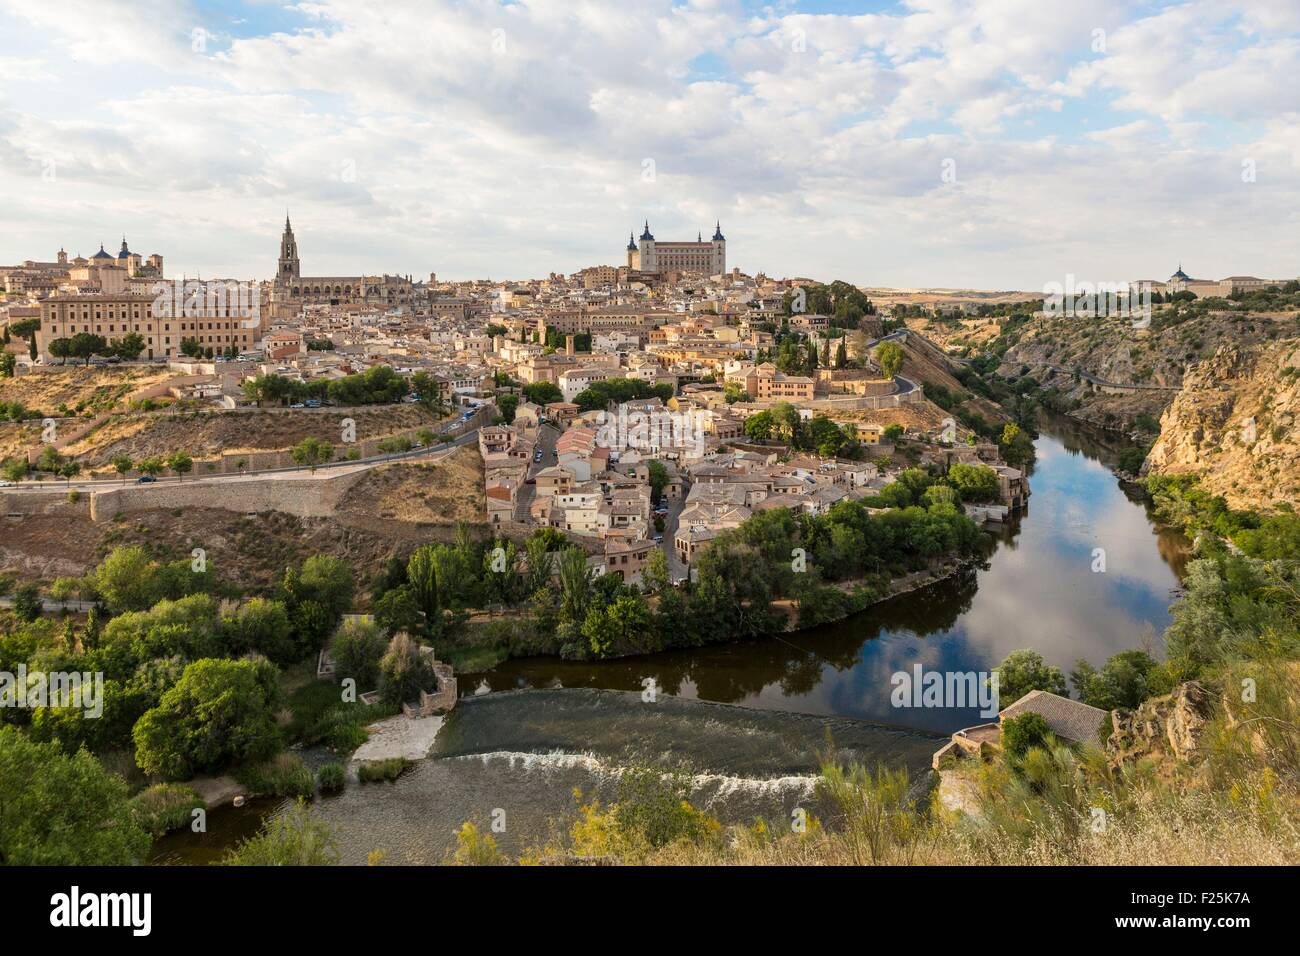 Spain, Castilla La Mancha, Toledo, historical city listed as World Heritage by UNESCO, surronded by the Alcazar - Stock Image